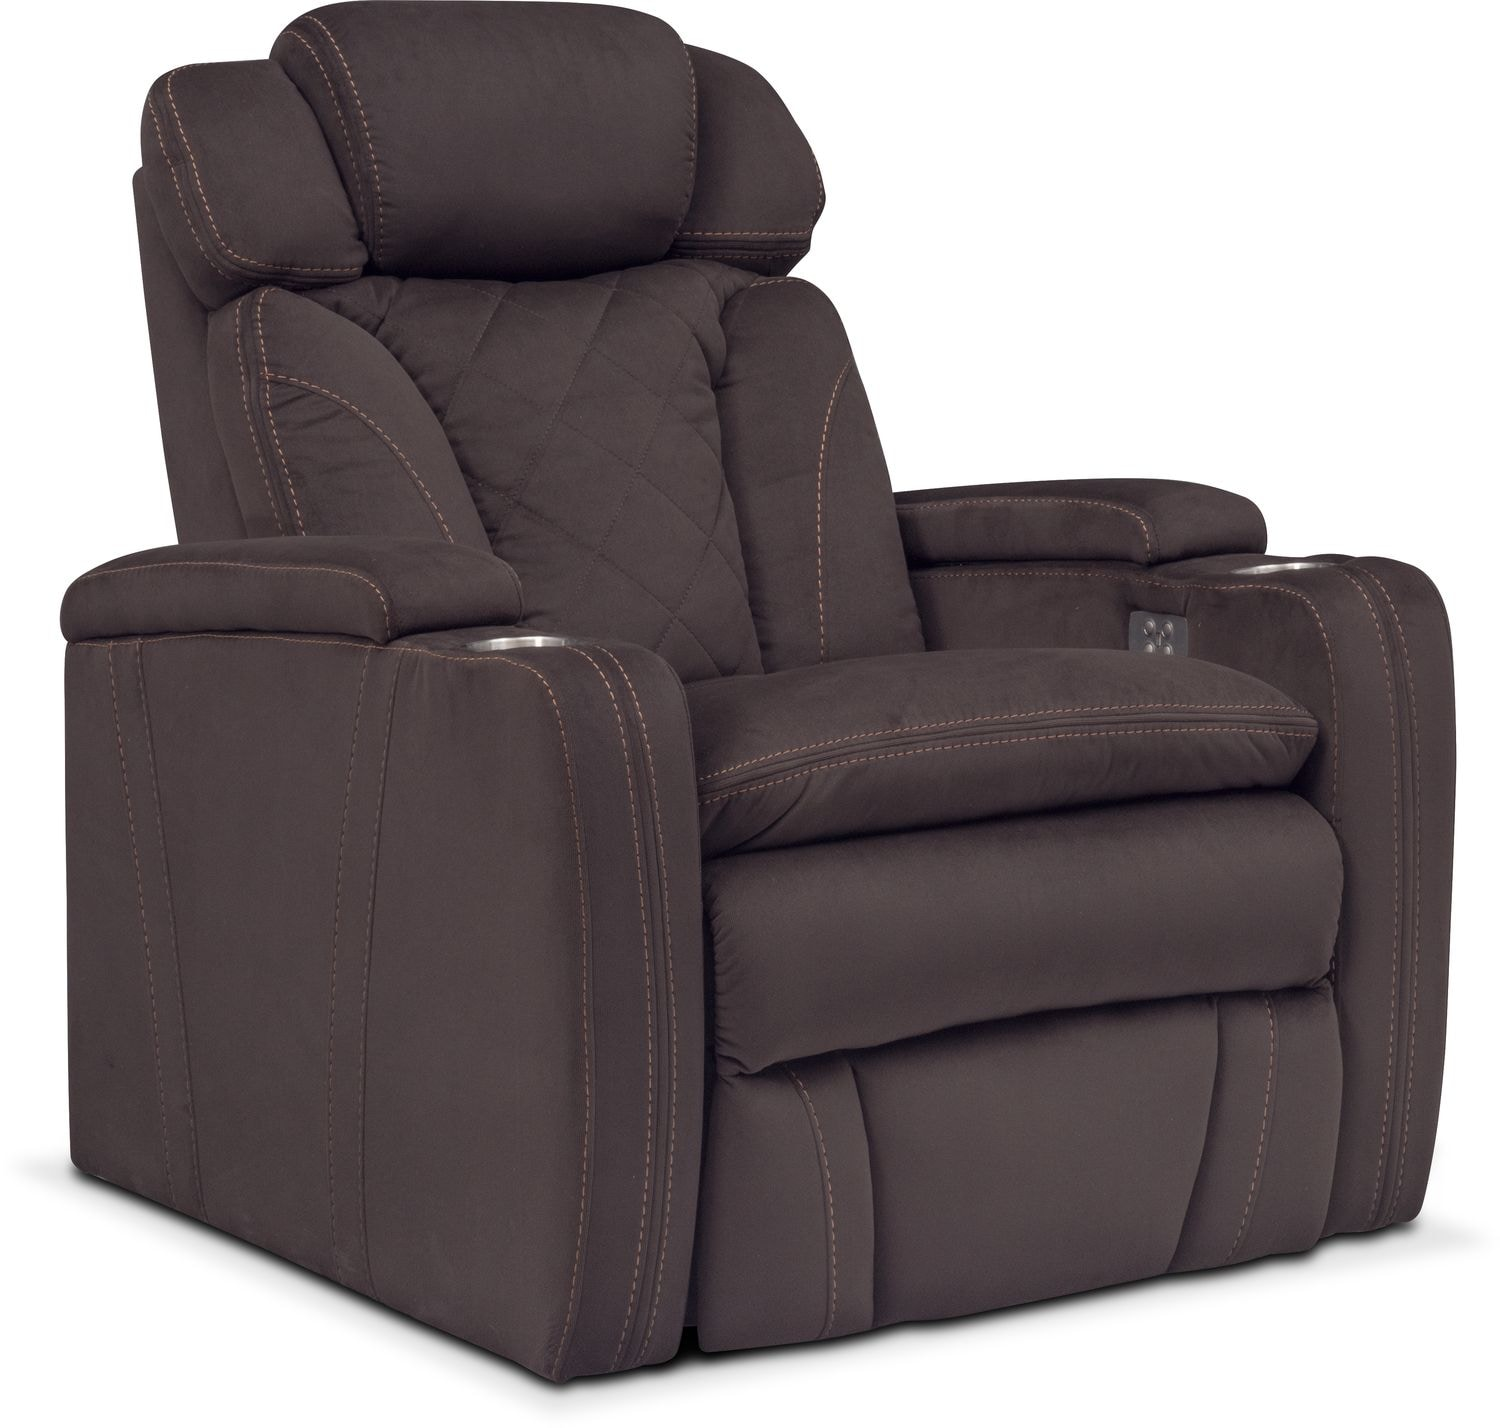 Living Room Furniture - Fiero Power Recliner - Godiva